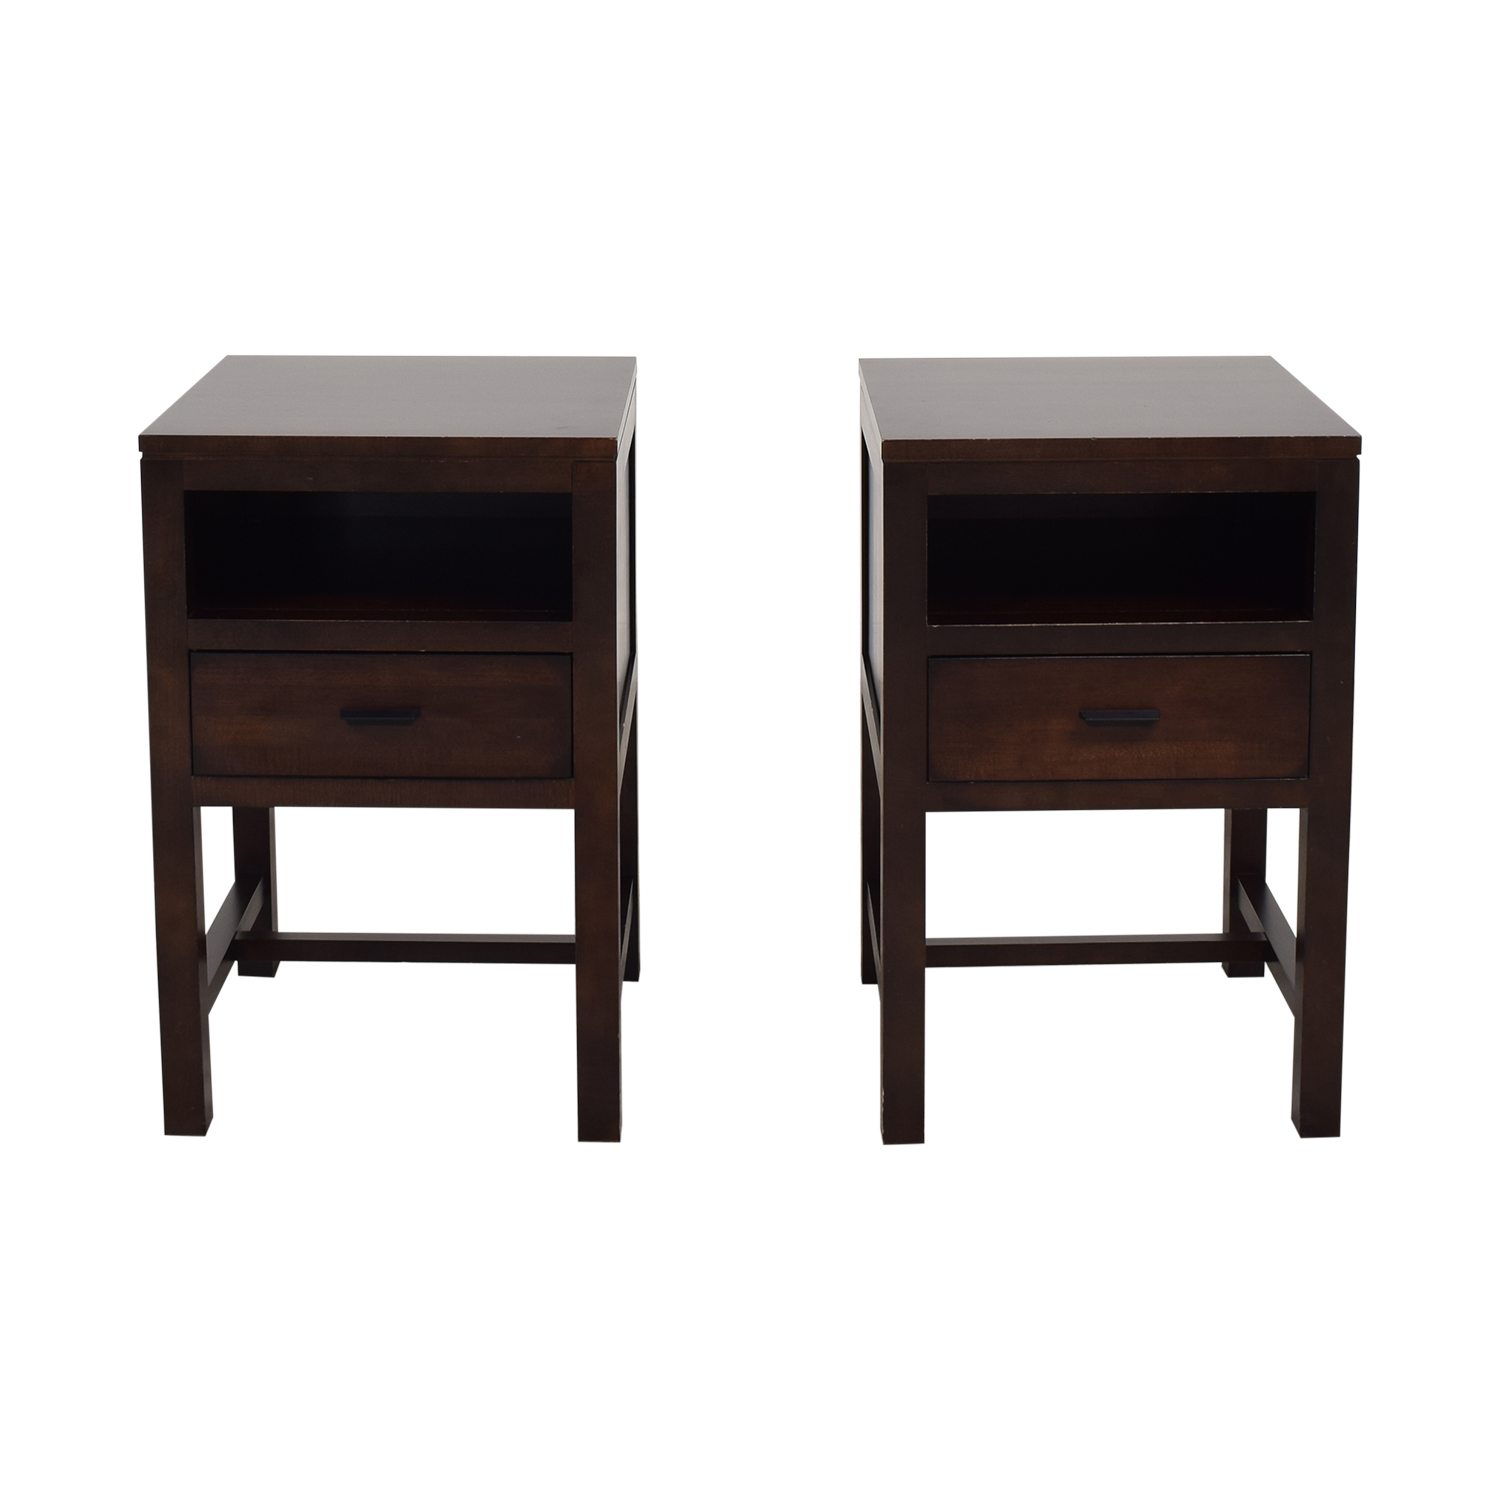 Durham Furniture Durham Furniture Maple Wood Night Stands dimensions